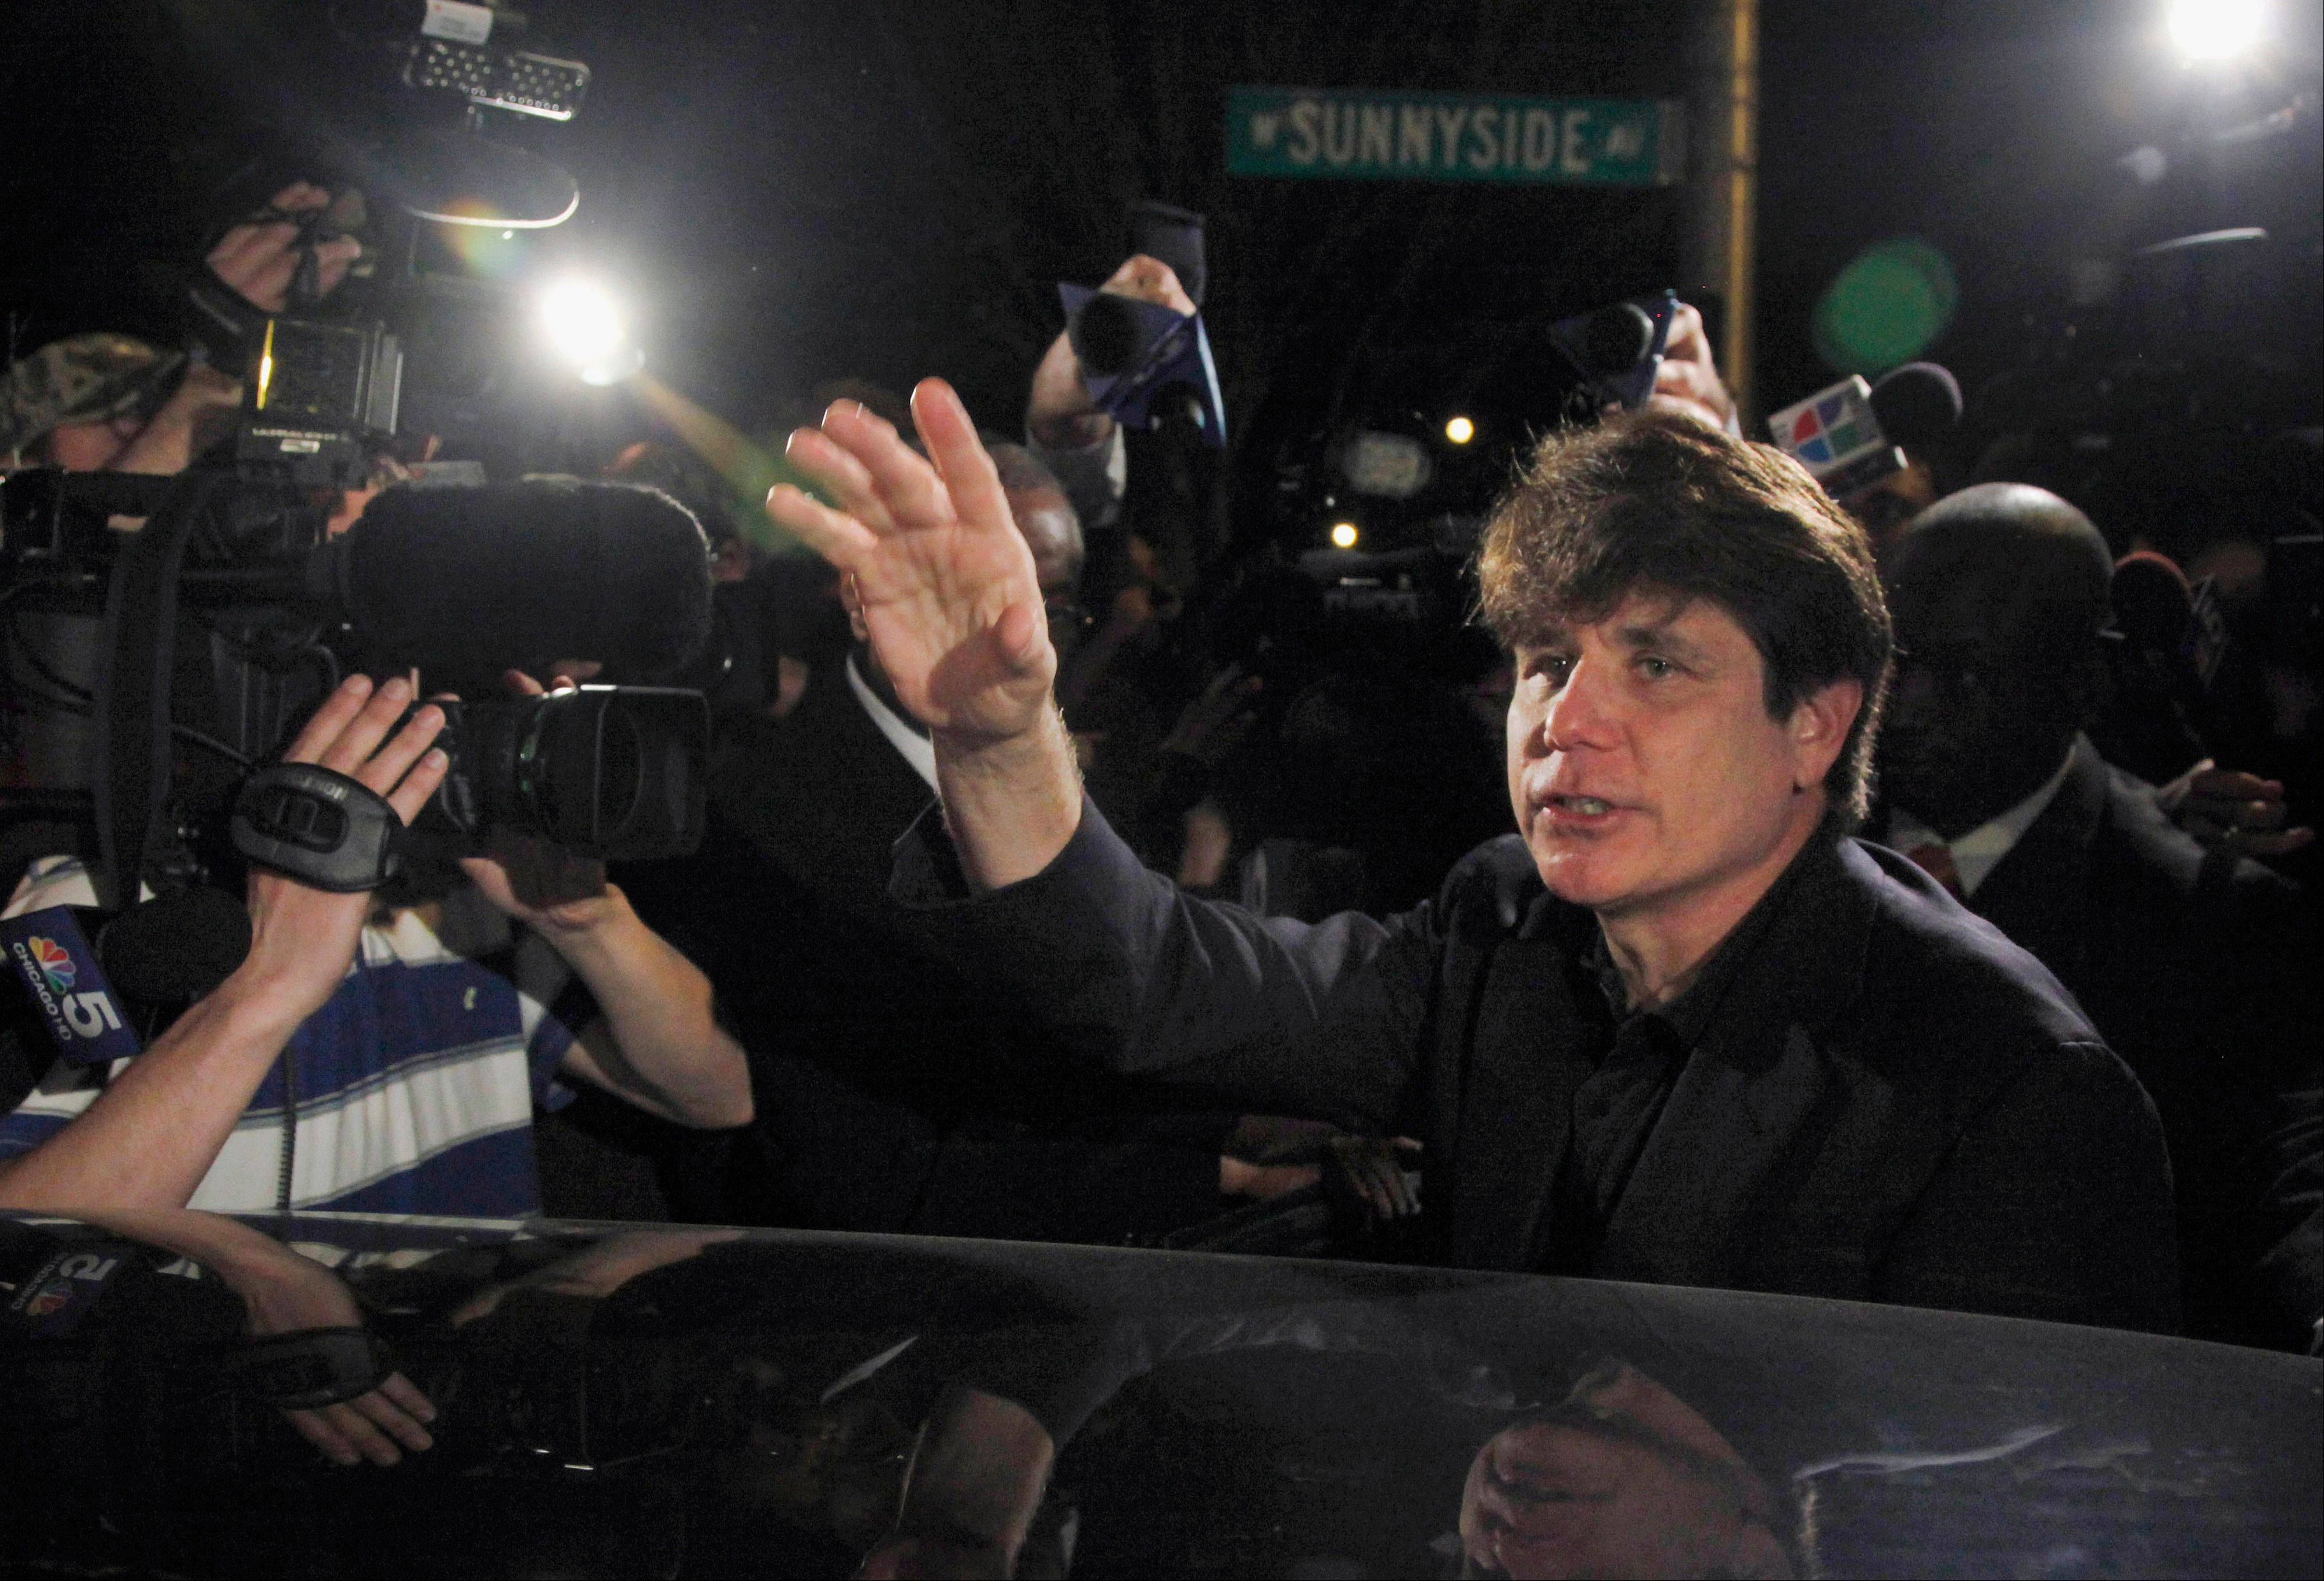 Last March 15, former Gov. Rod Blagojevich departs his Chicago home for Littleton, Colo., to begin his 14-year prison sentence on corruption charges.